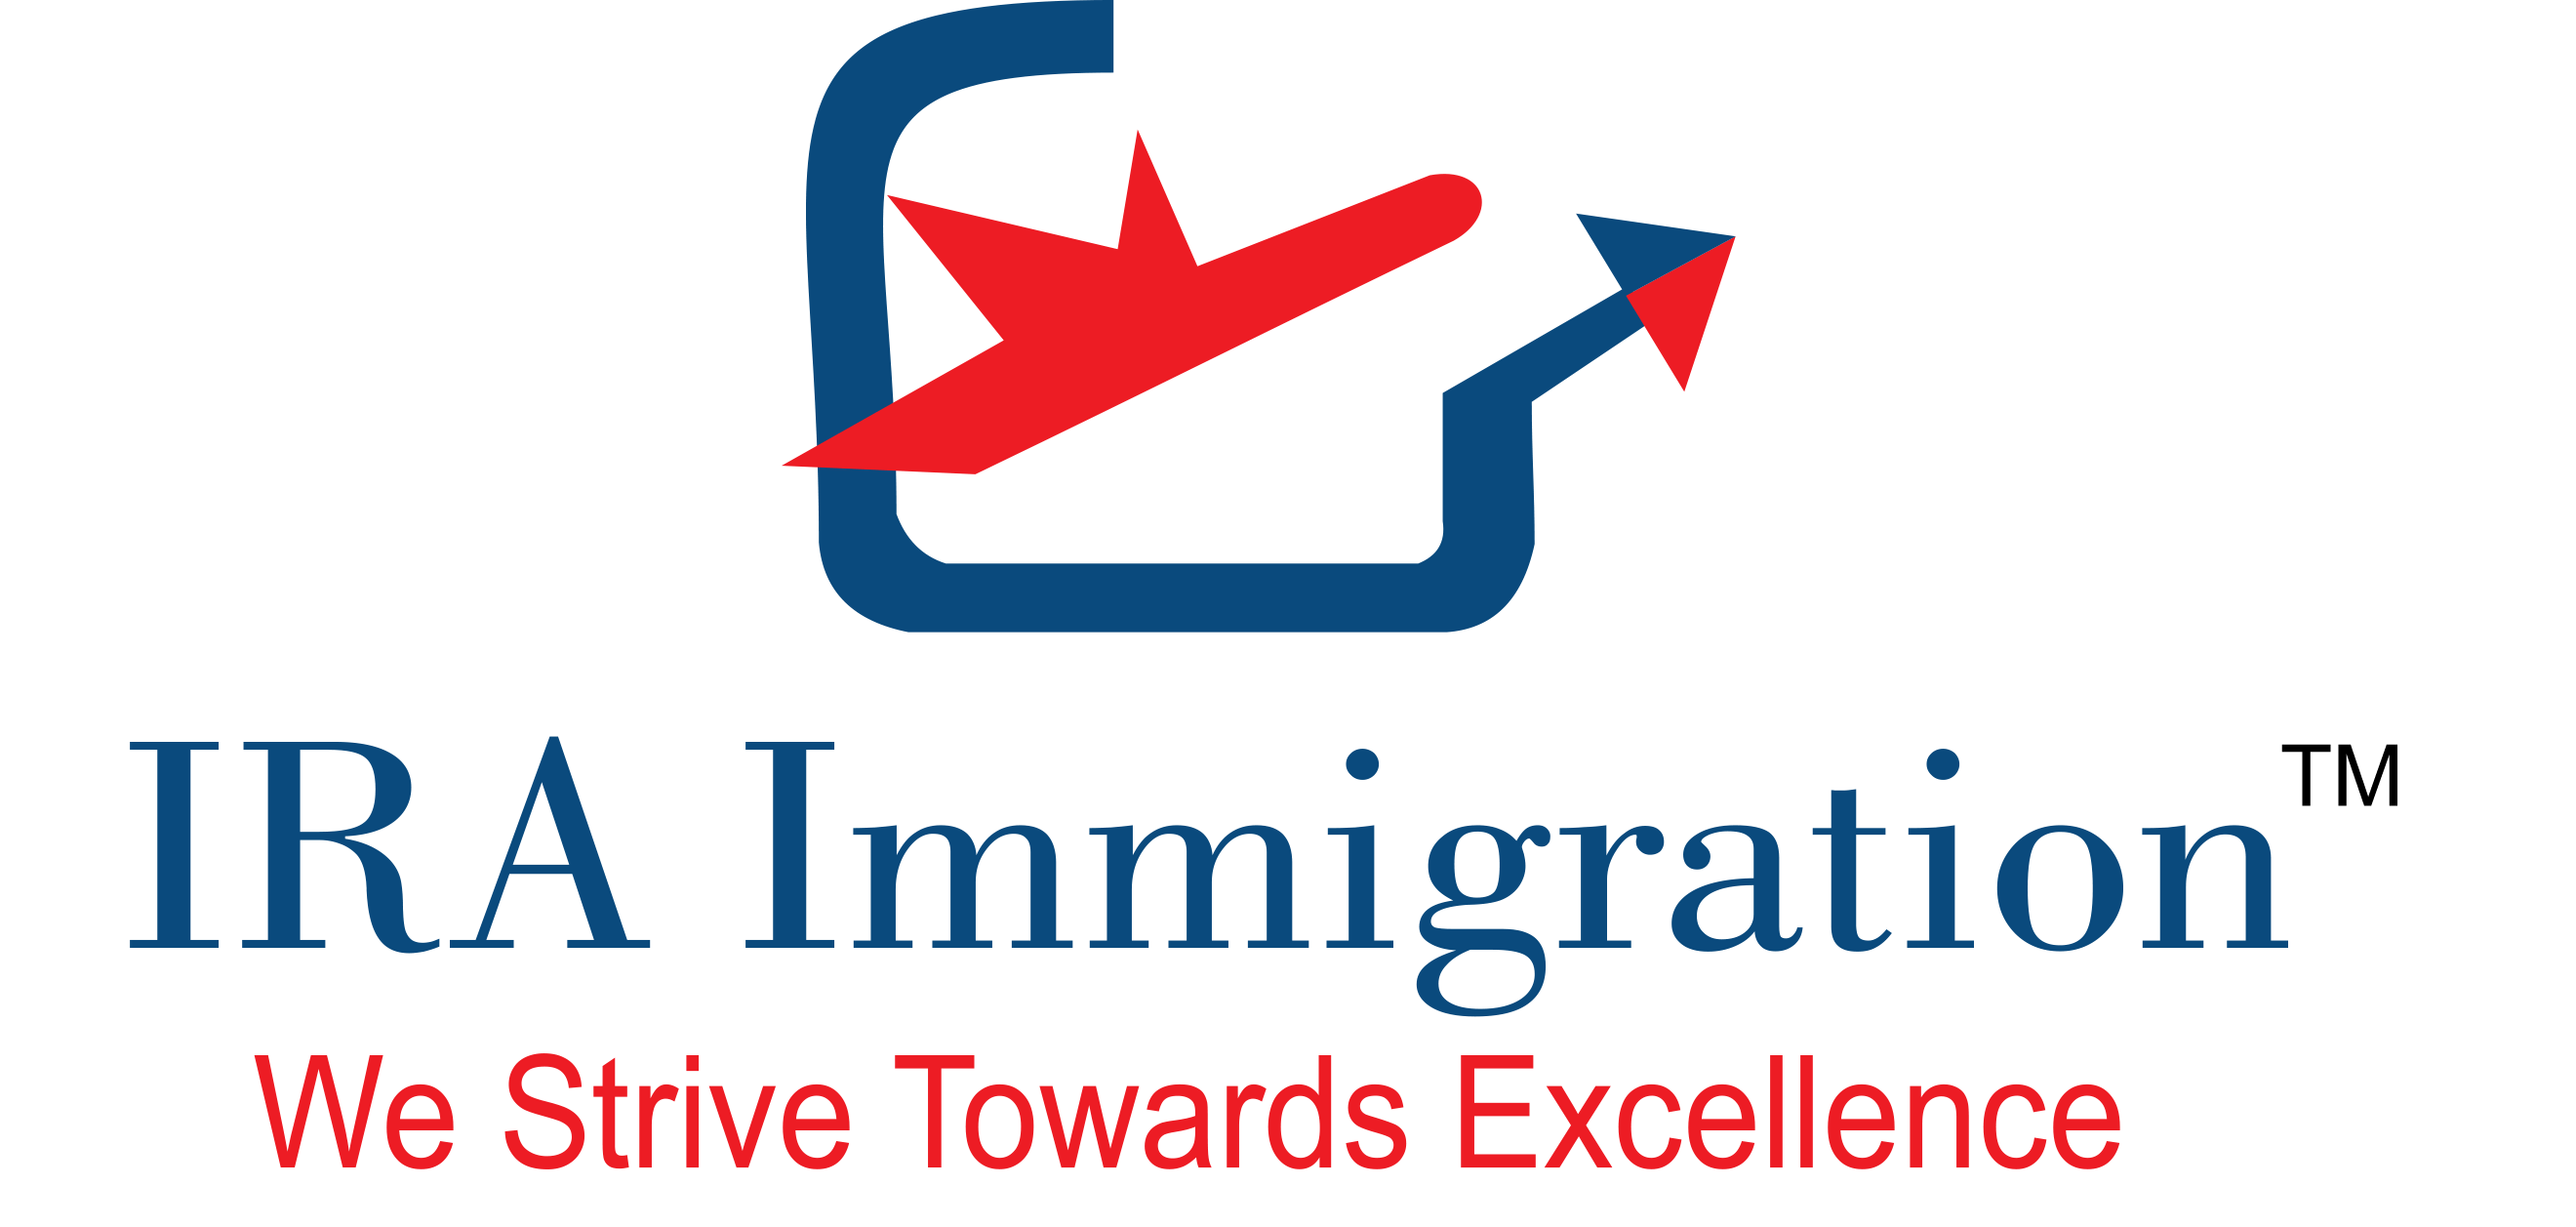 blogiraimmigration.com